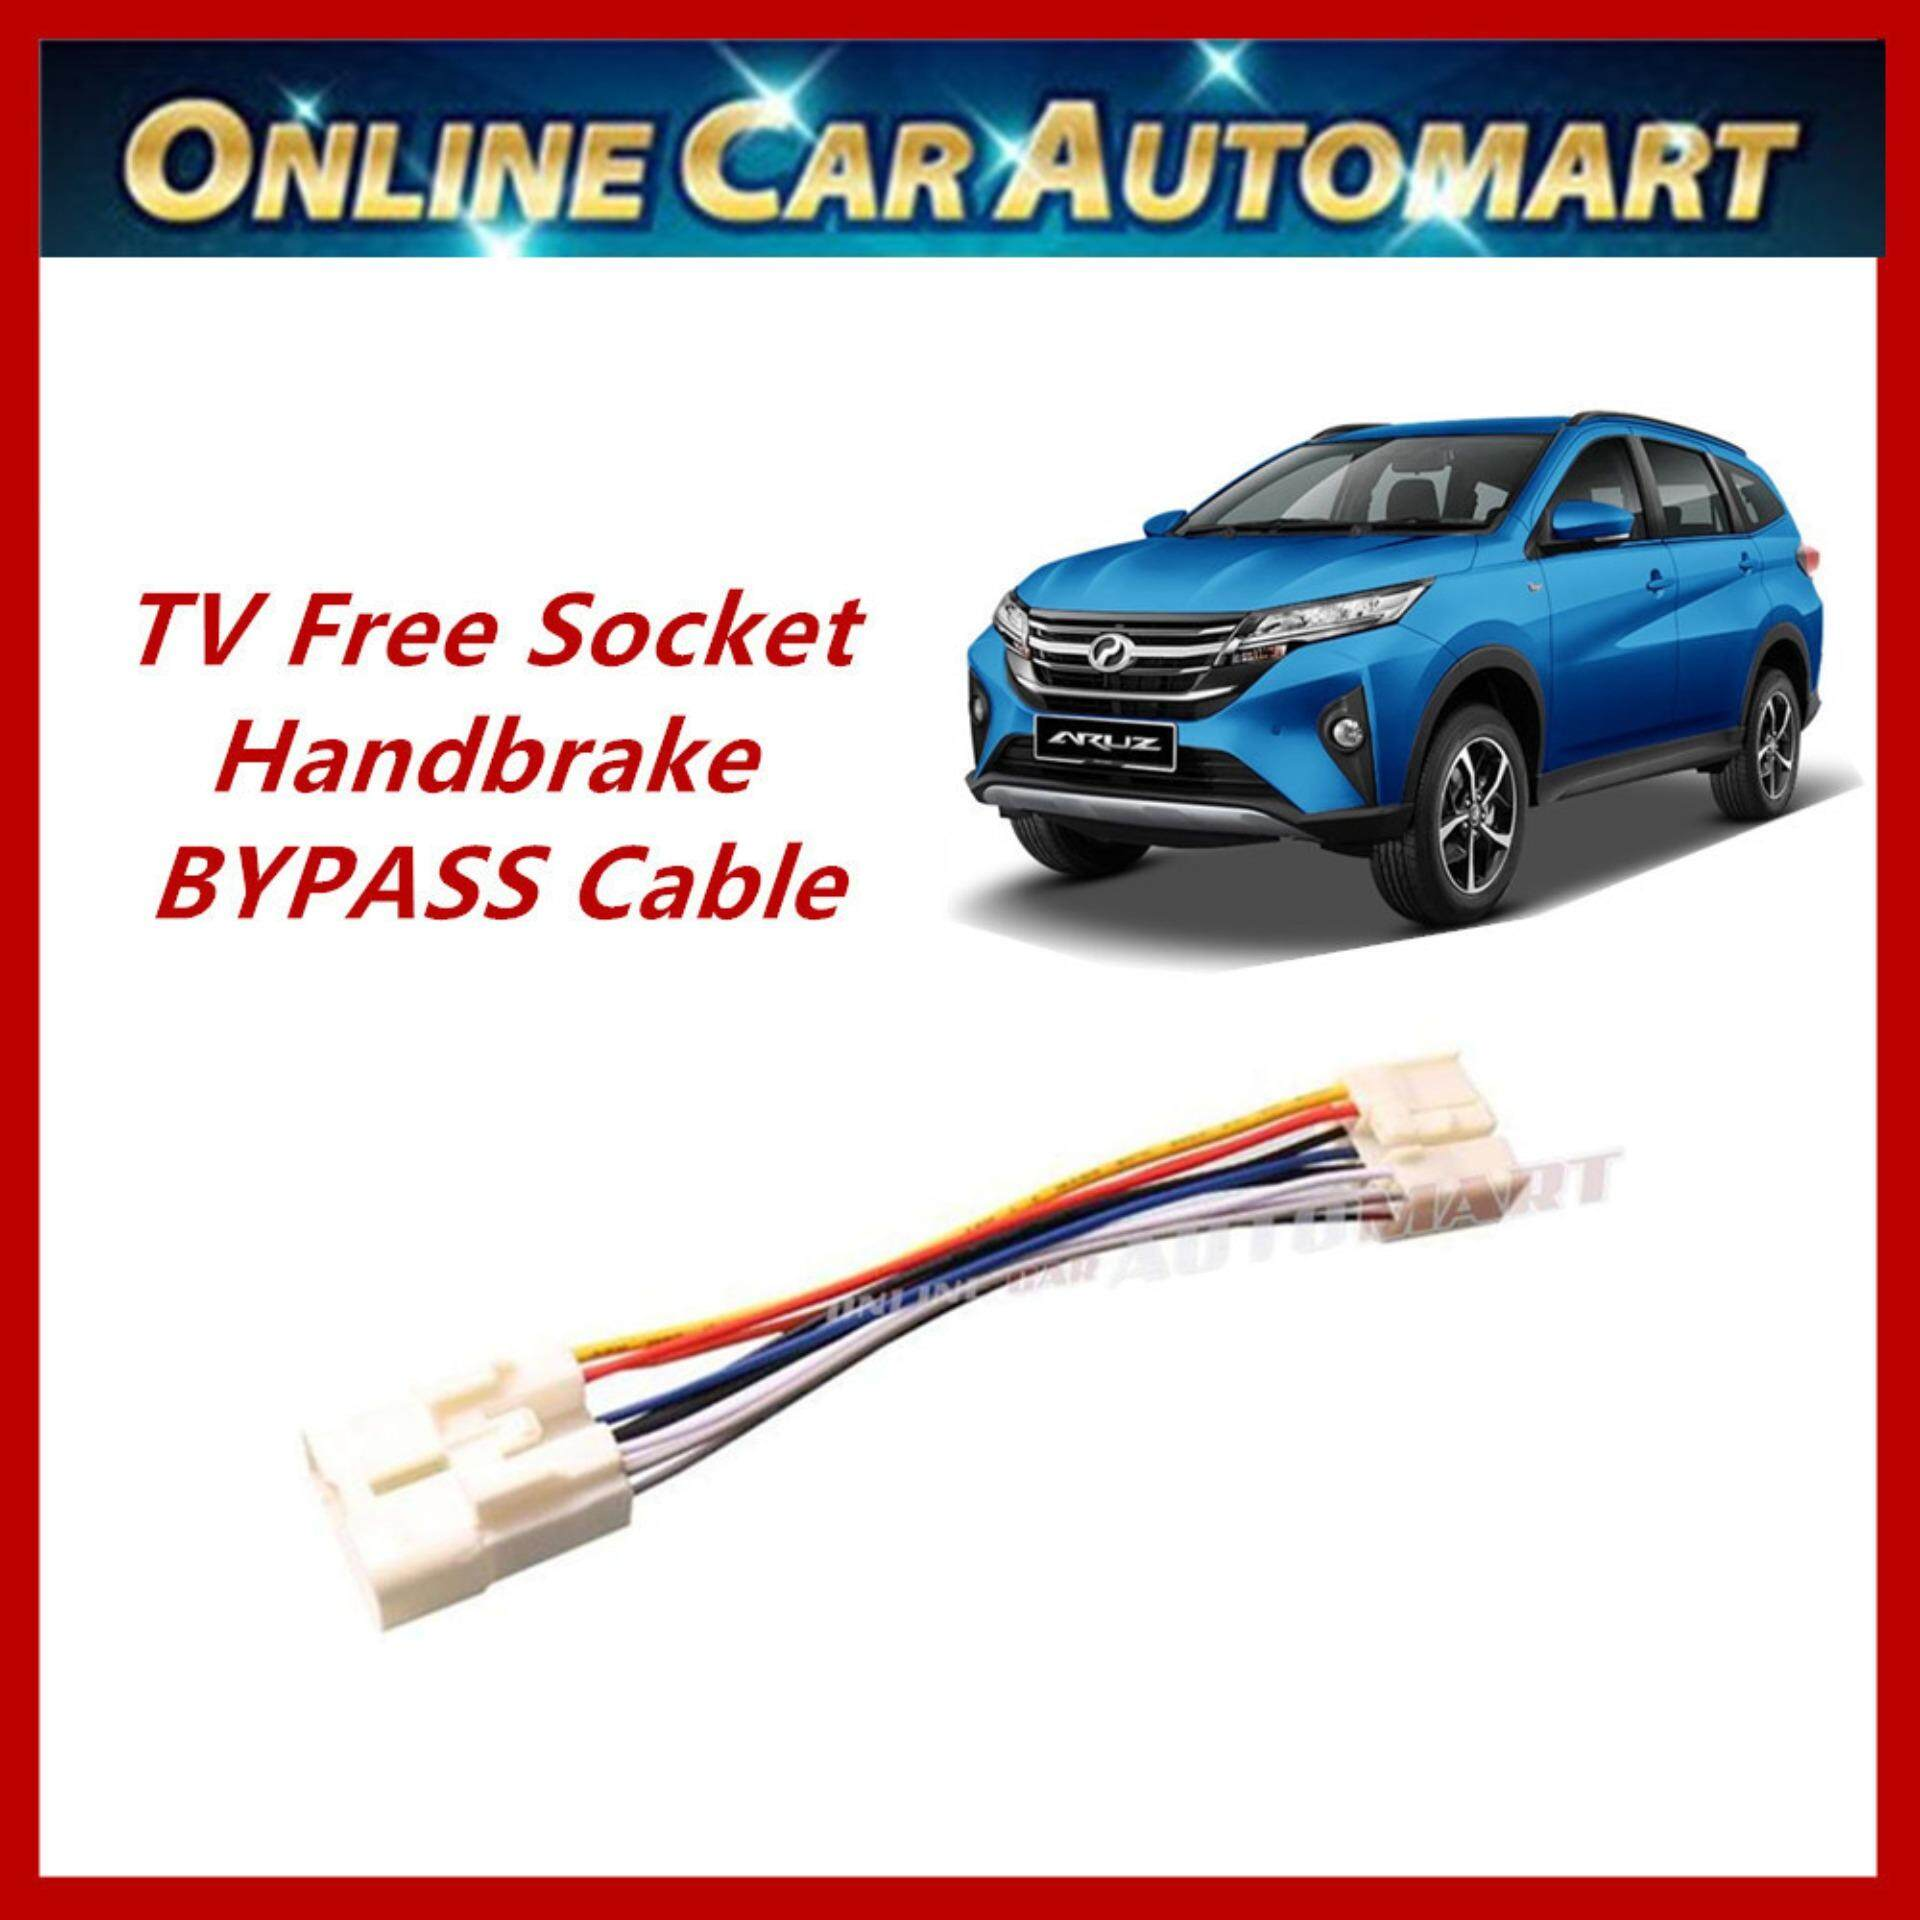 Perodua Aruz Plug n Play handbrake ByPass Car DVD Video